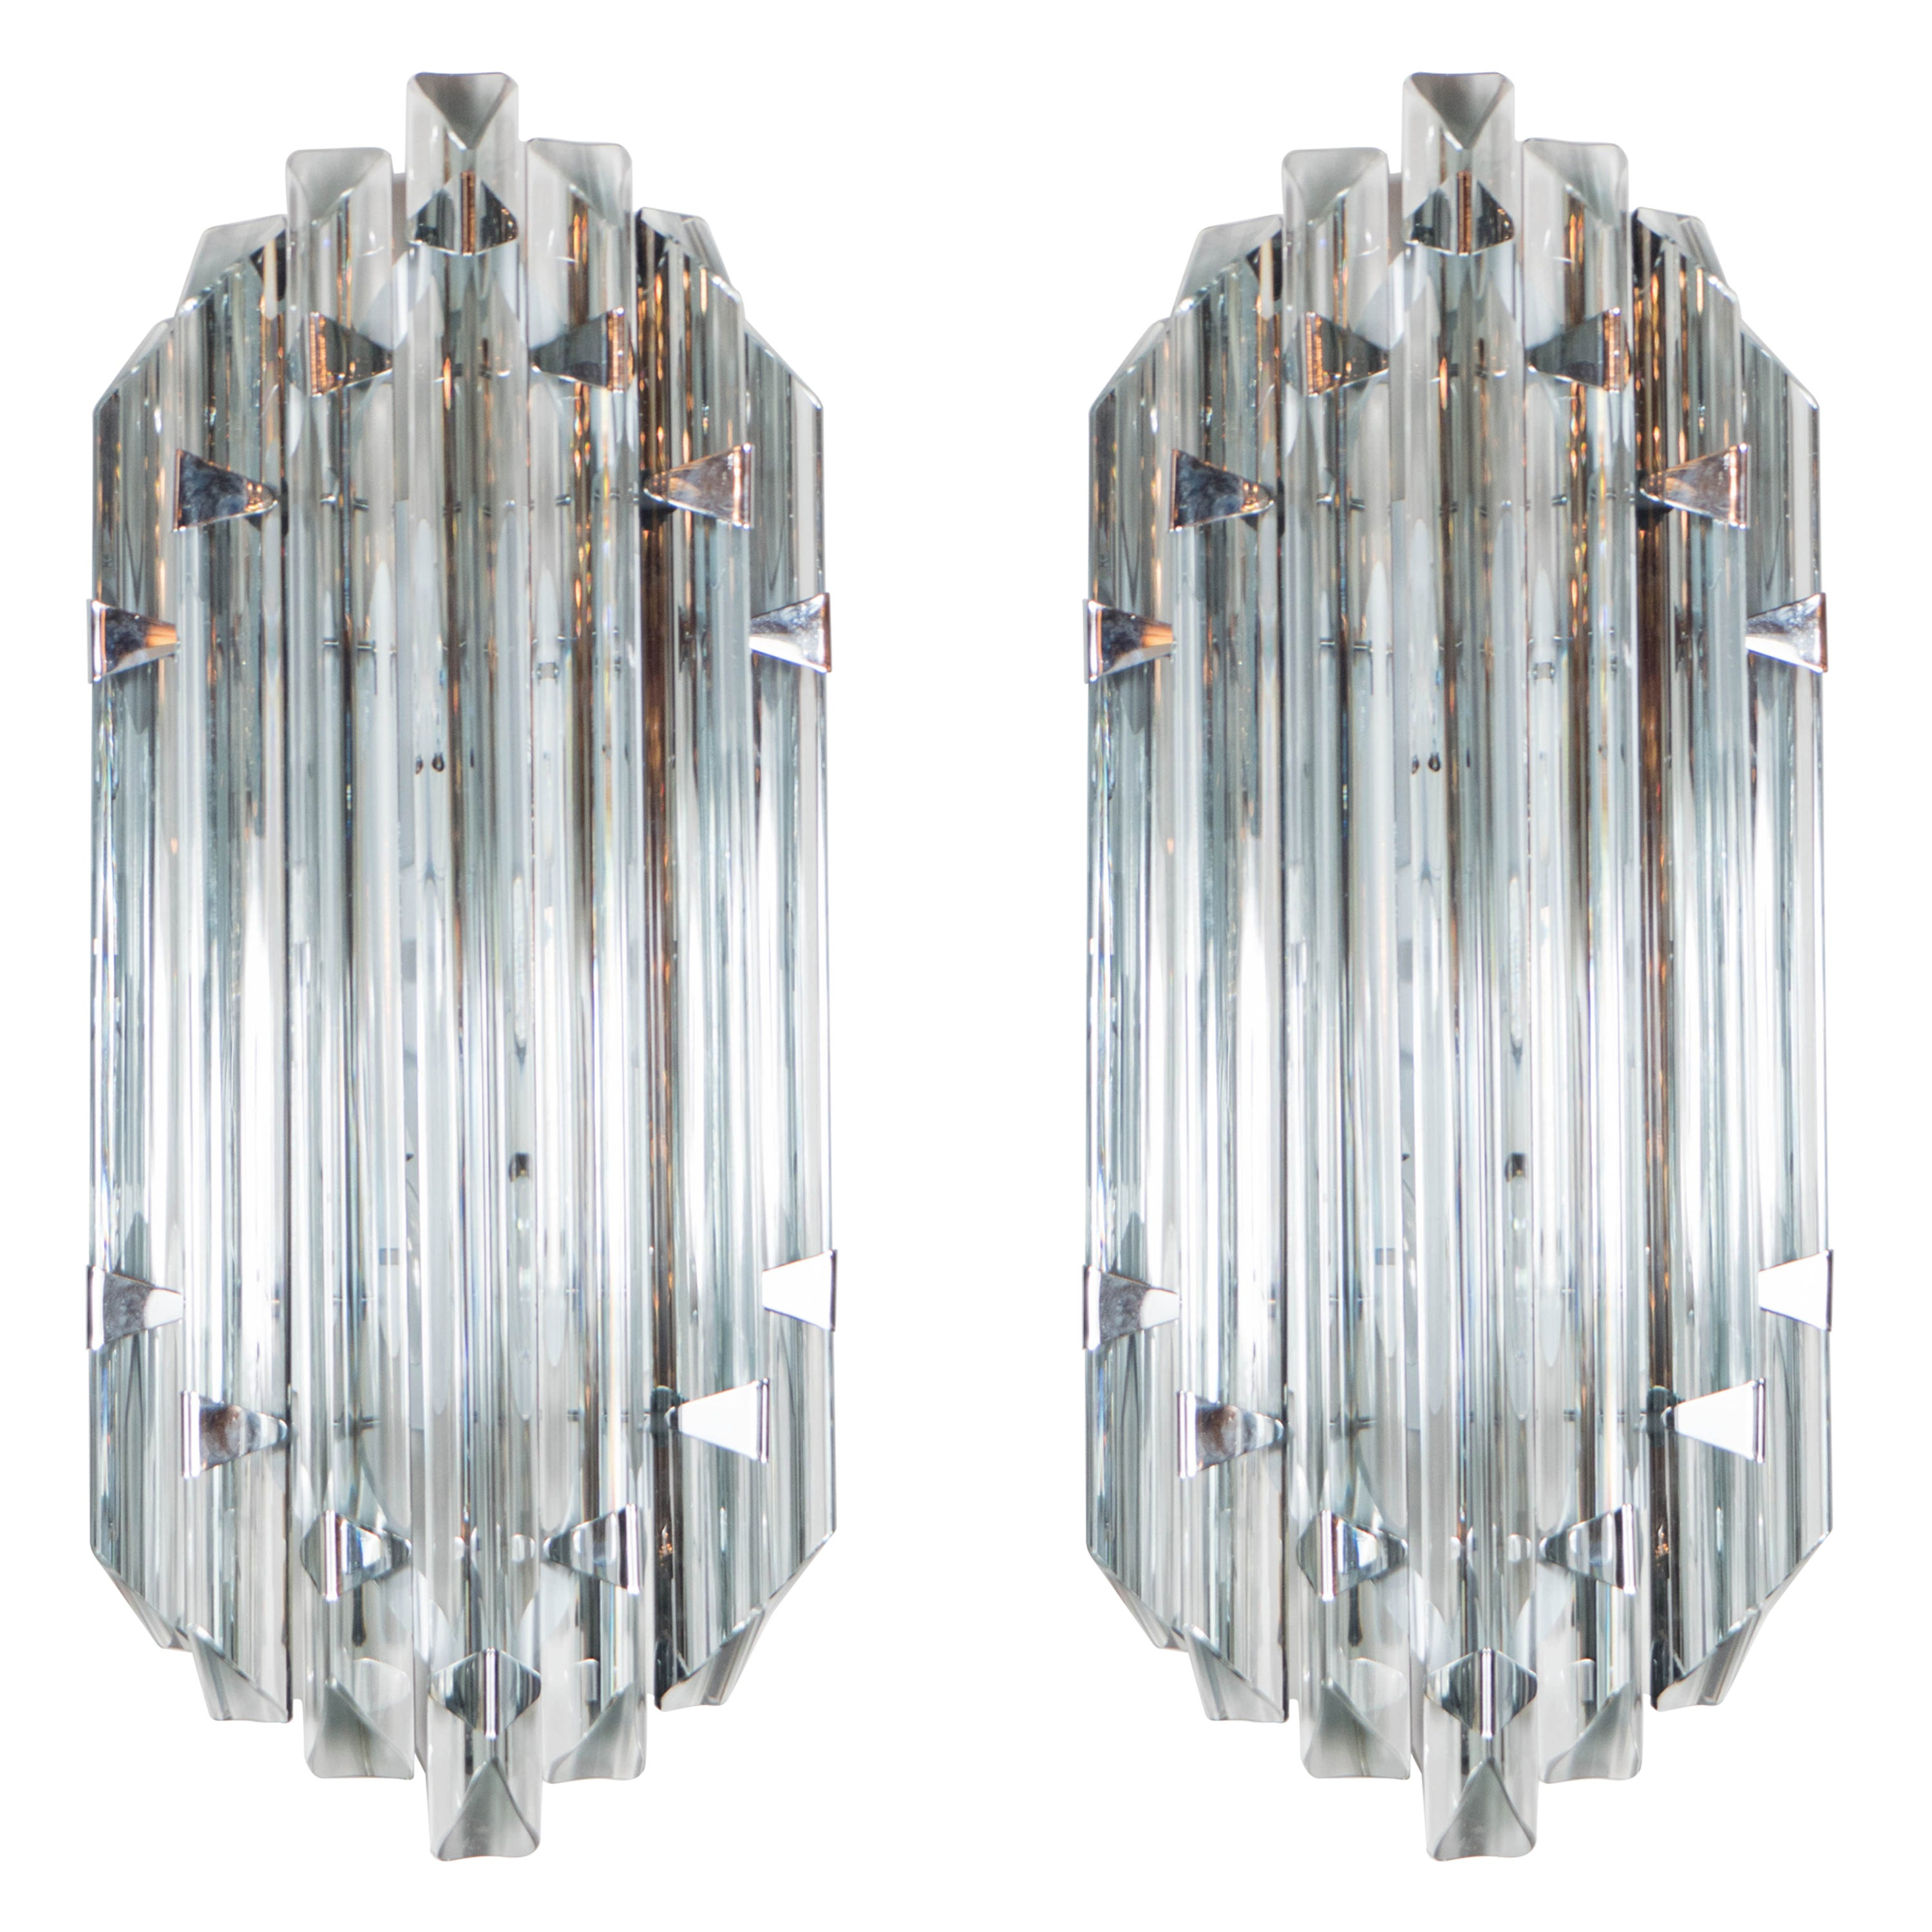 Pair of Mid-Century Modernist Sconces in Smoked Murano Glass with Nickel